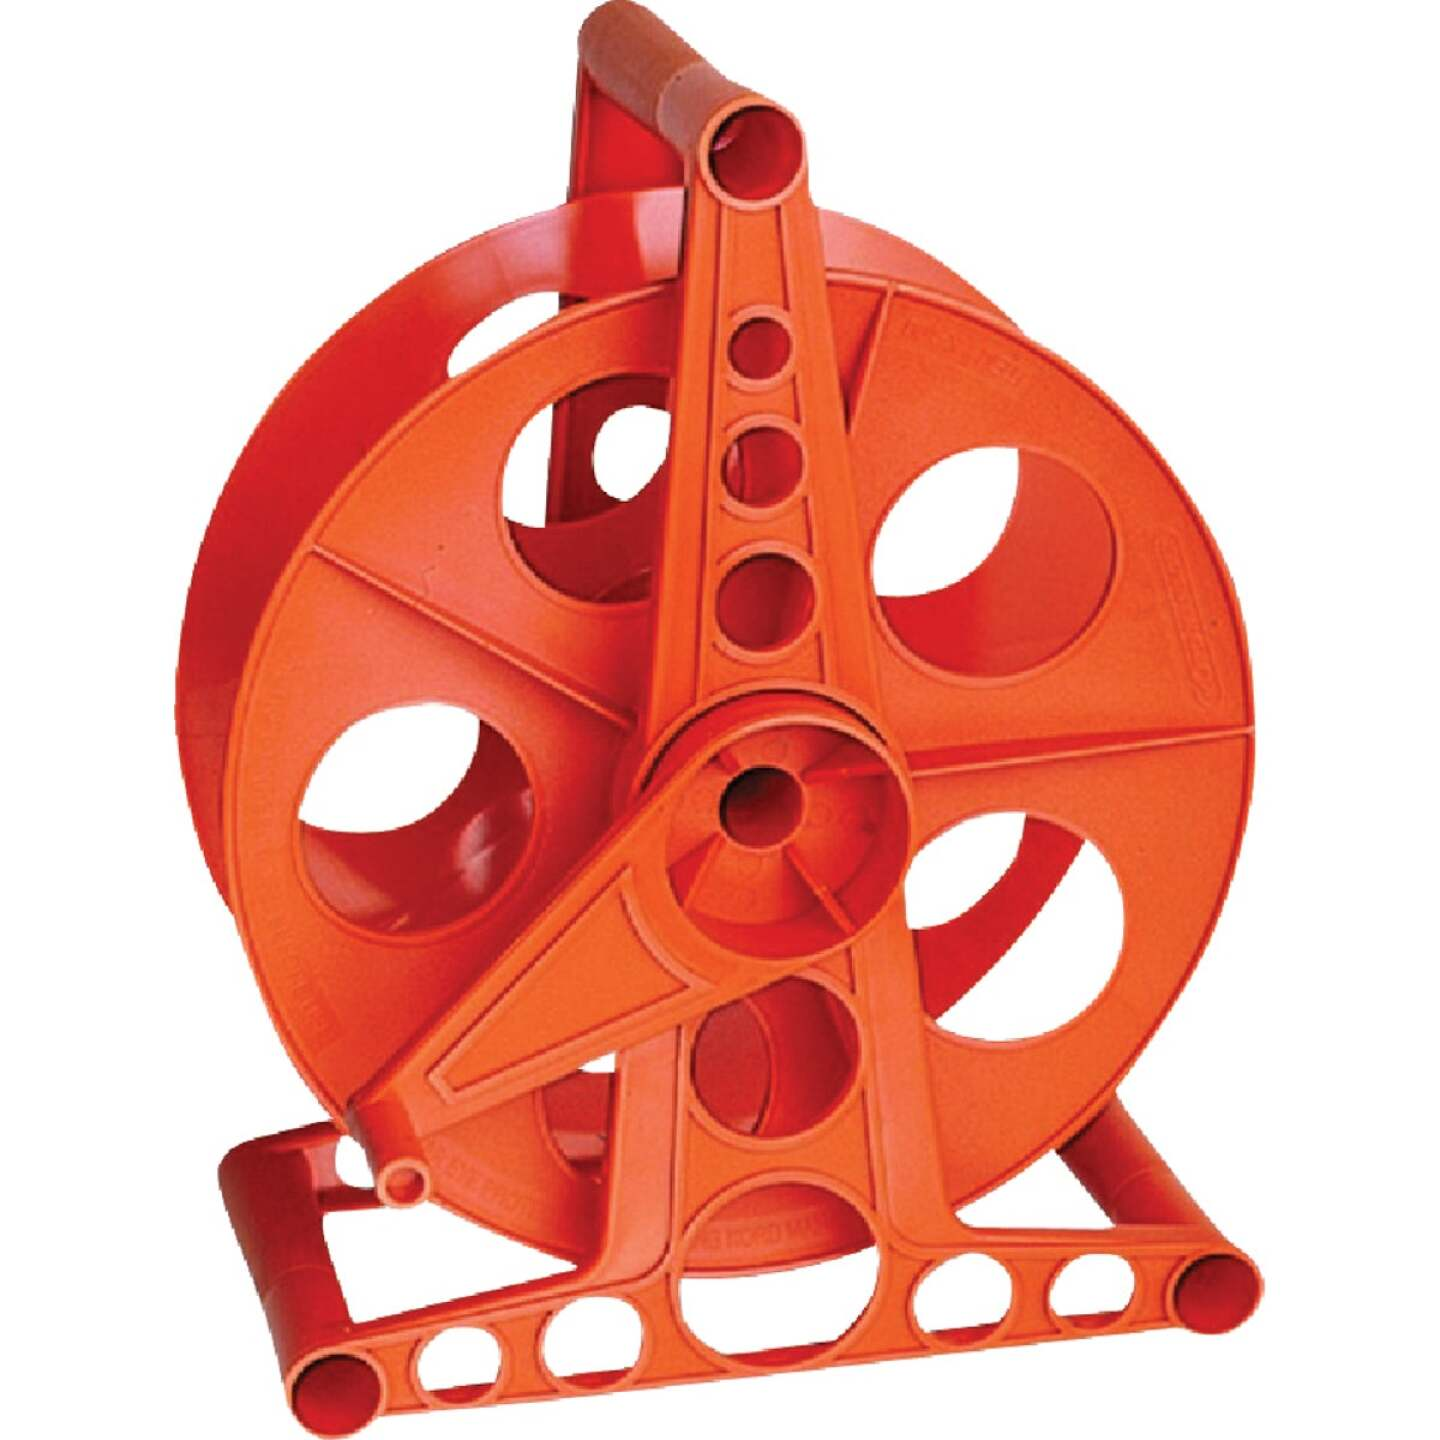 Bayco 150 Ft. of 16/3 Cord Capacity Plastic Cord Reel with Stand Image 1